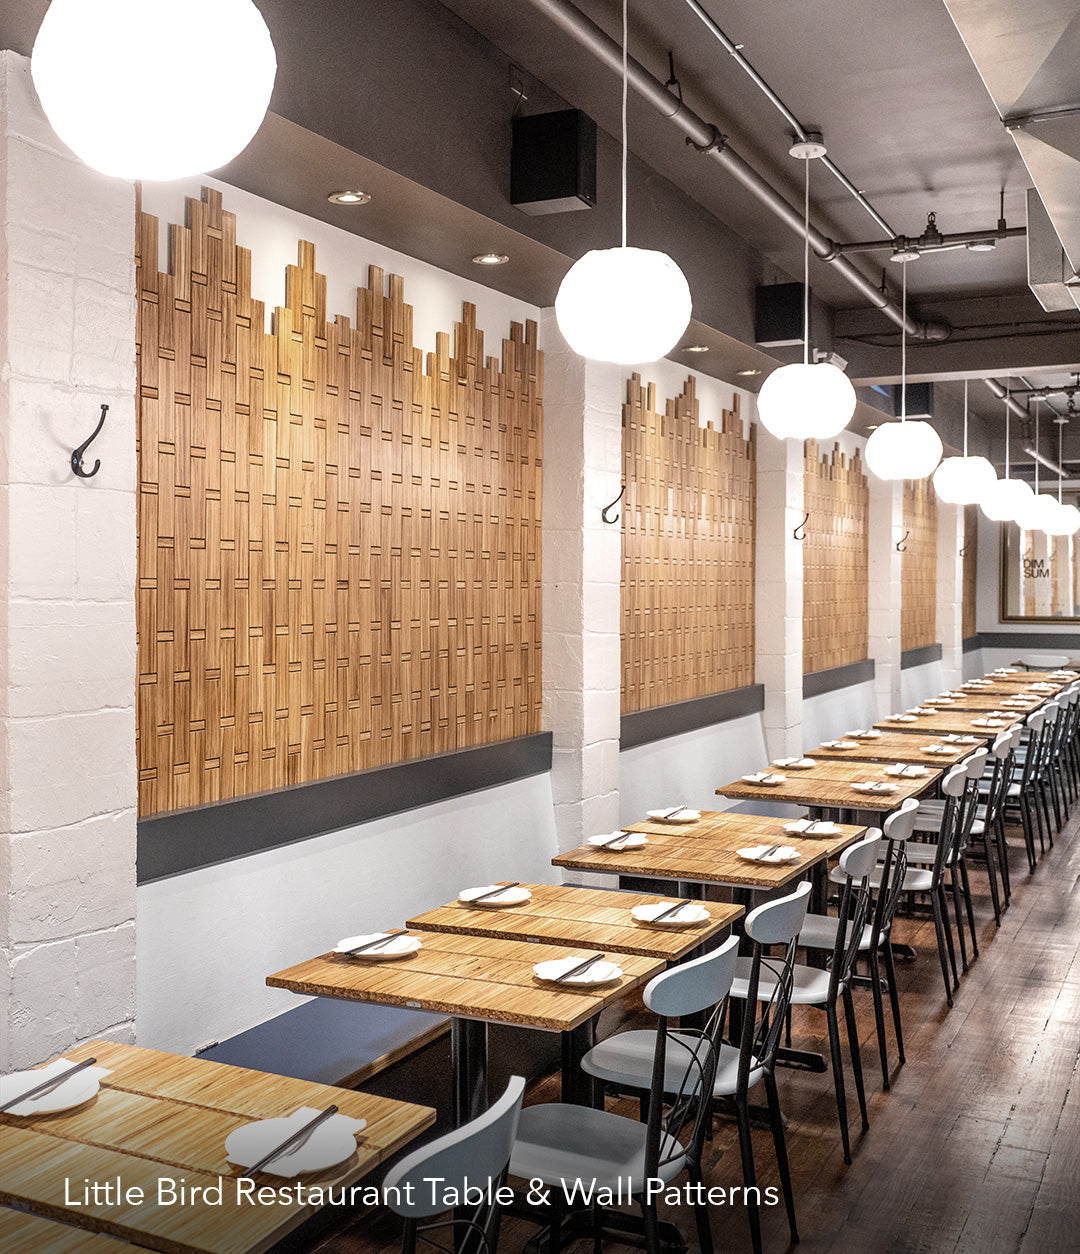 Custom eco-friendly wall paneling and tables for Little Bird restaurant